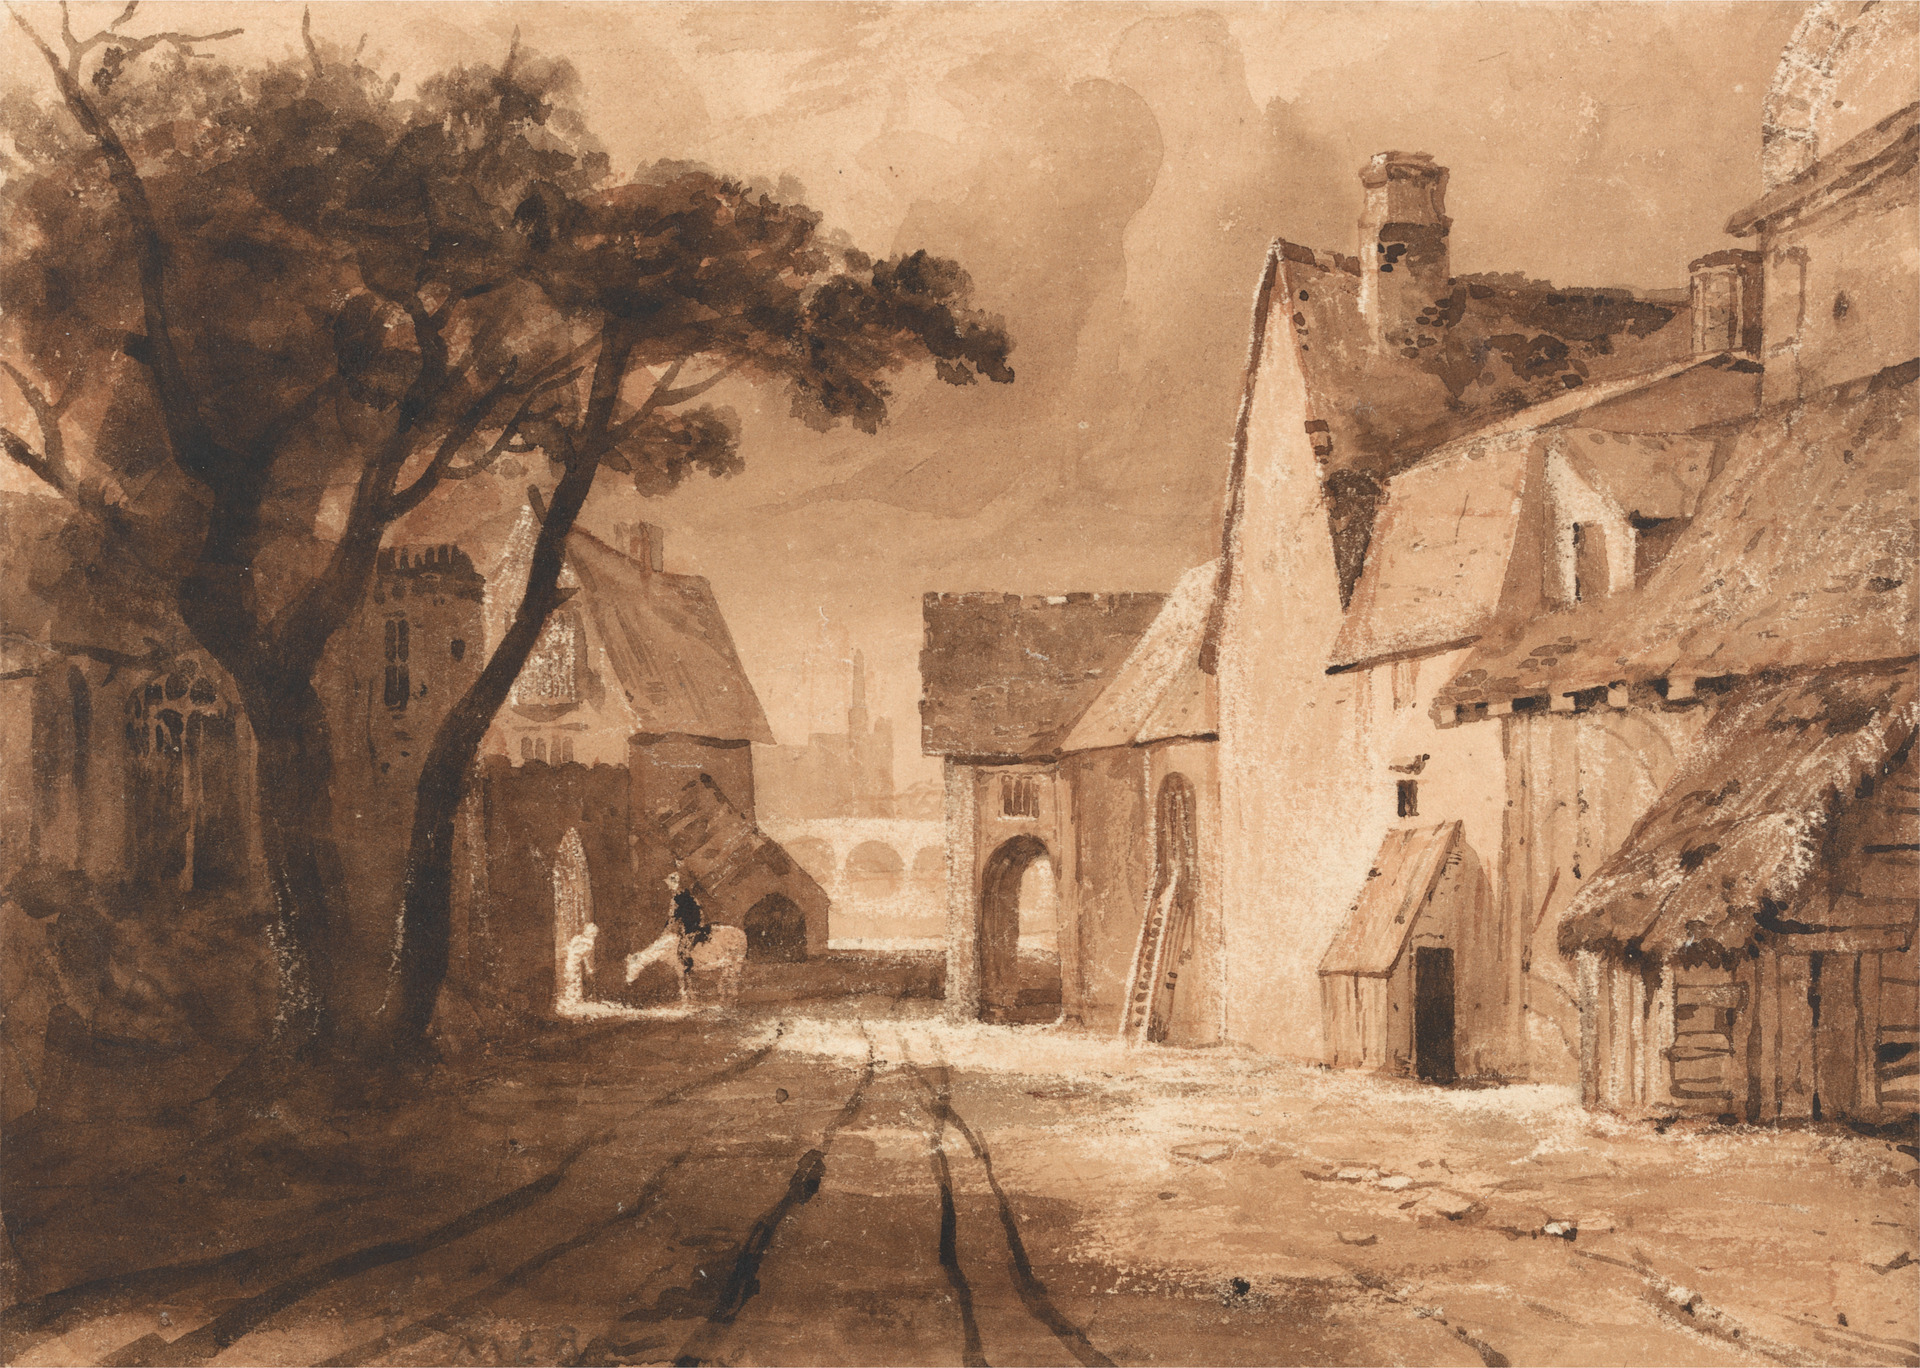 Sketch of old buildings with tree on left